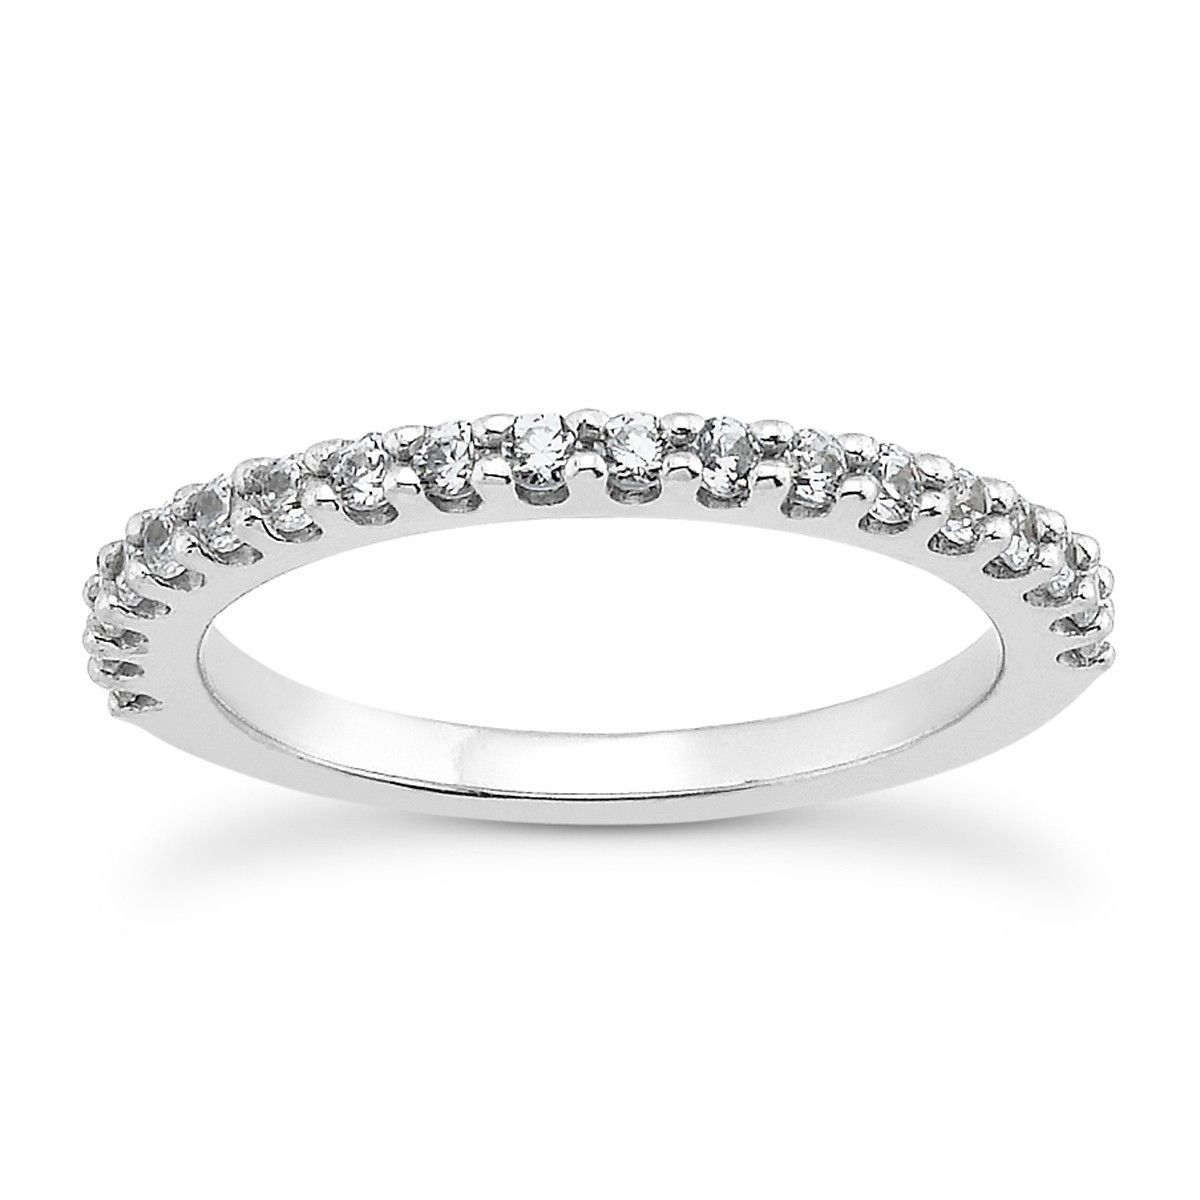 4f520e69a01 The slender profile of this sparkling shared prong wedding ring brings  understated elegance to the unique